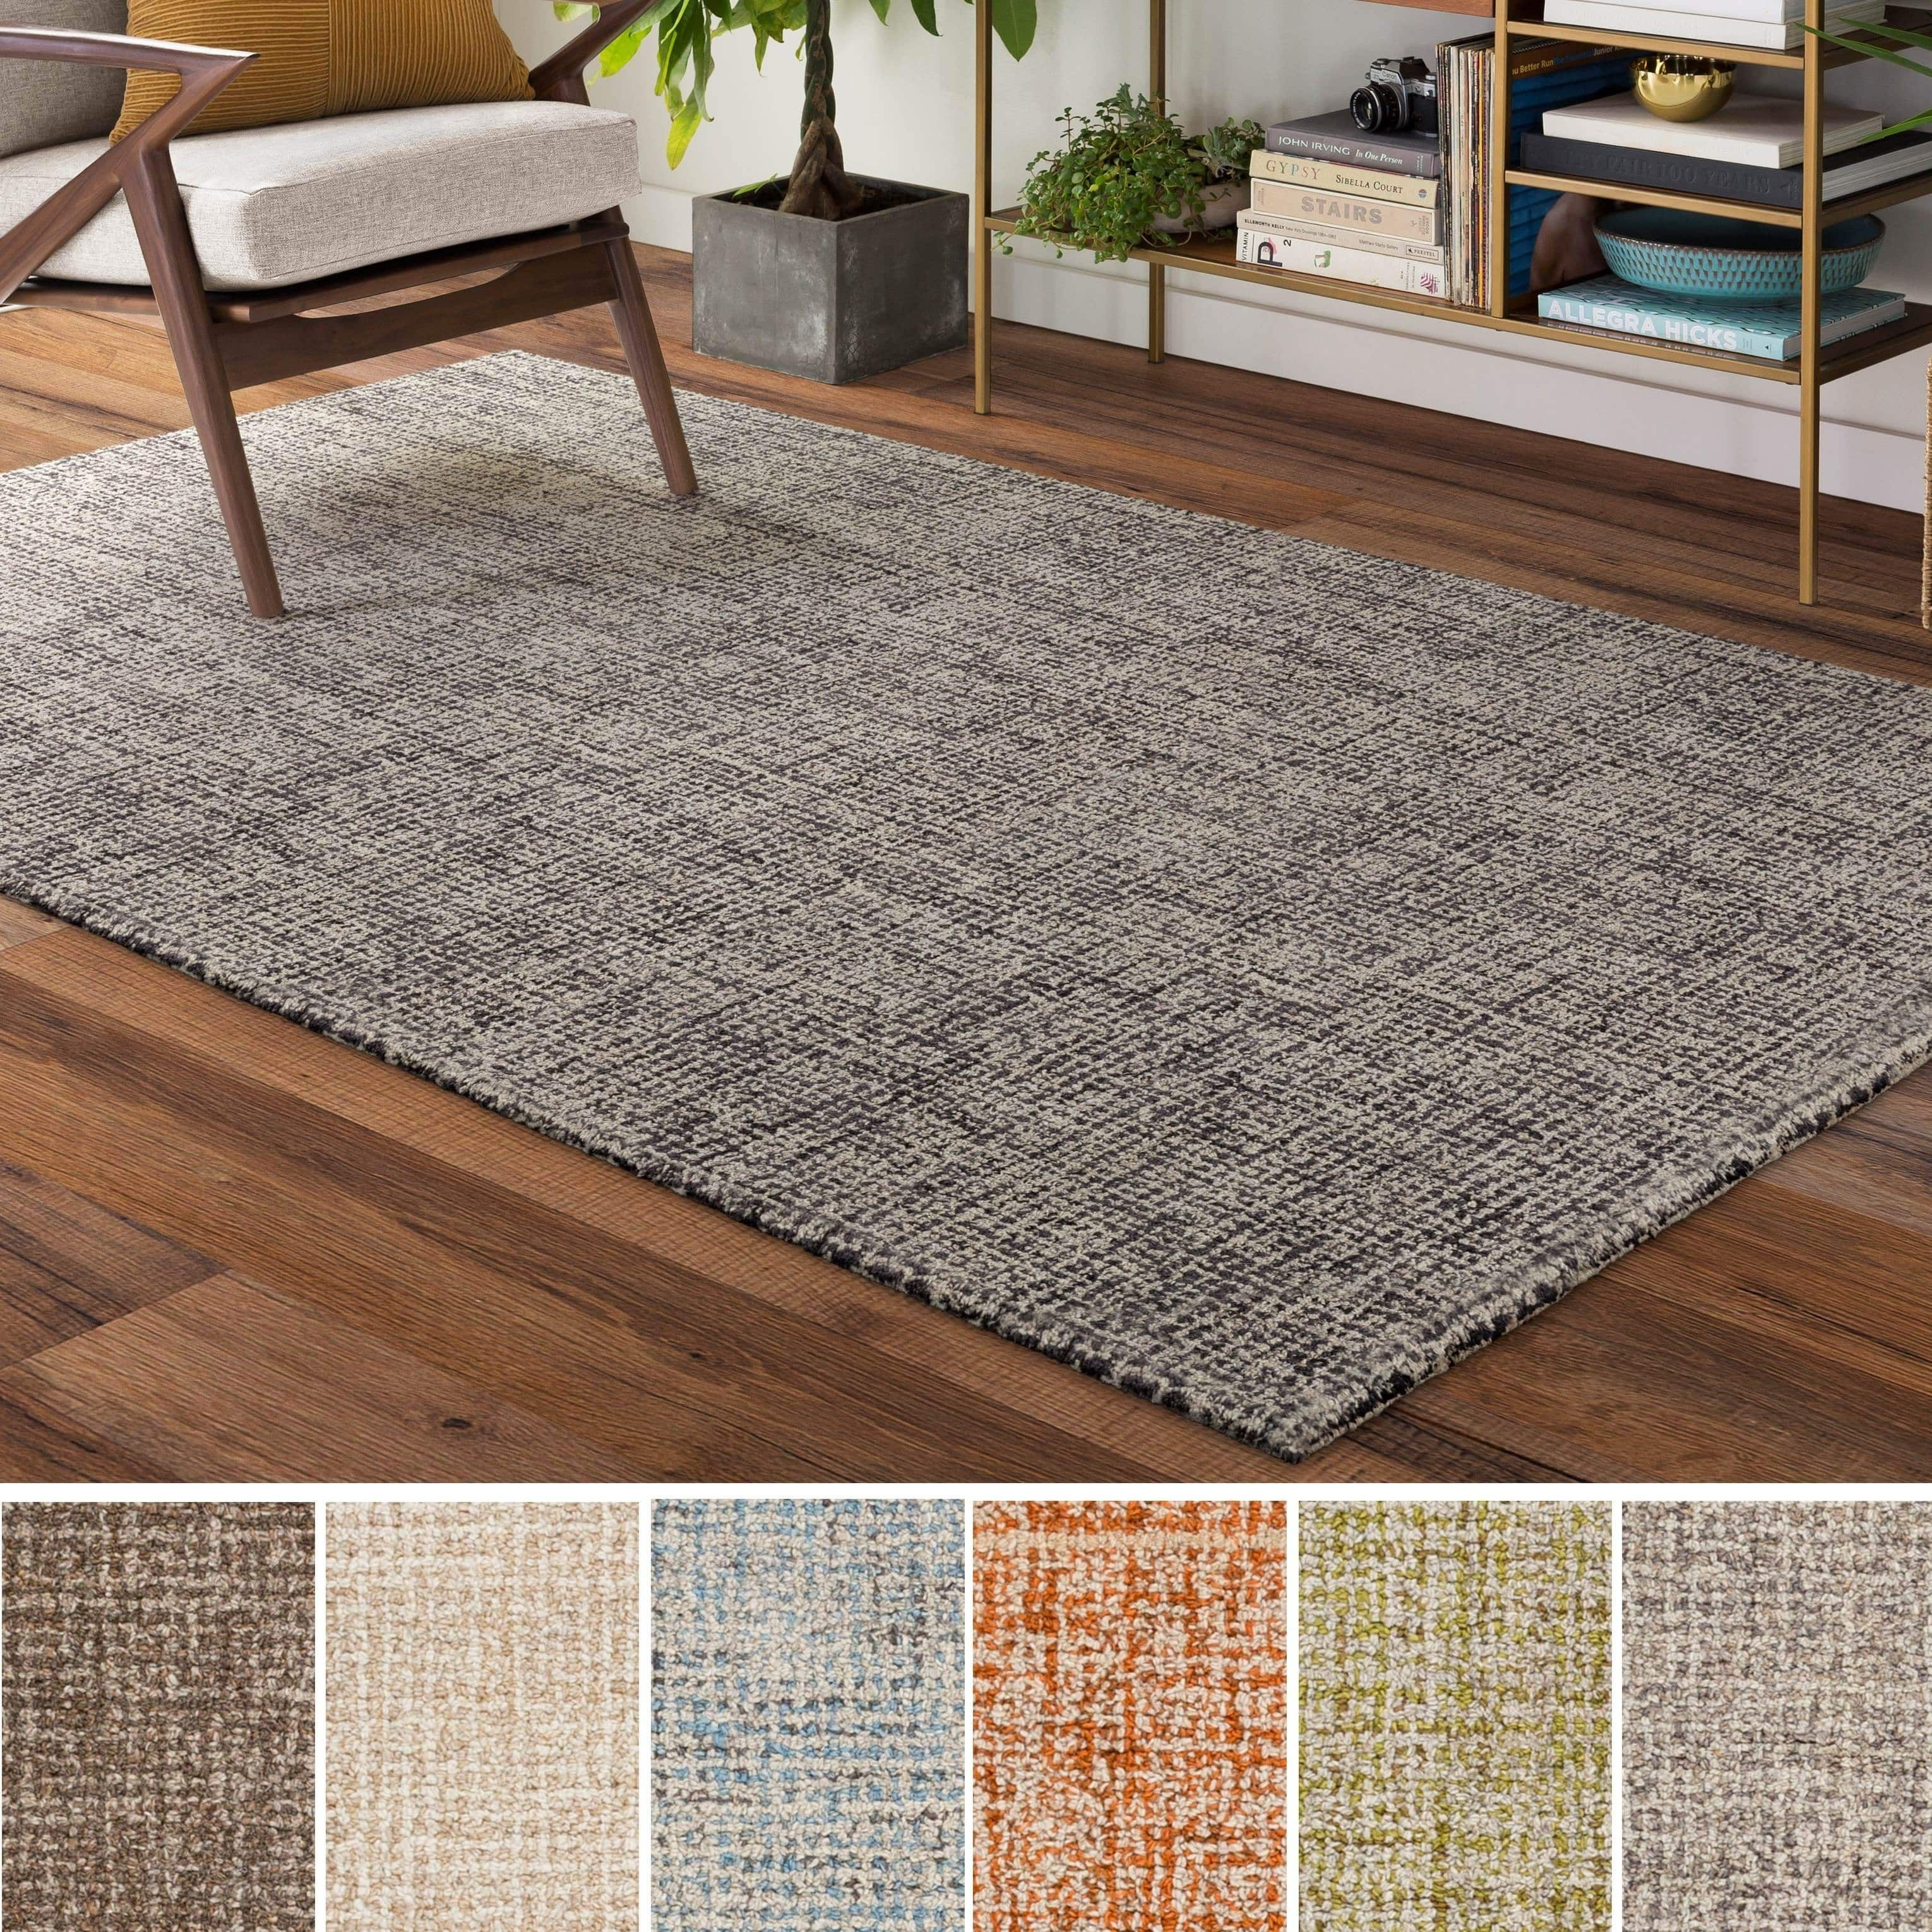 Hand Tufted Pali Wool Area Rug 5 X 7 6 Cool Rugs Rugs